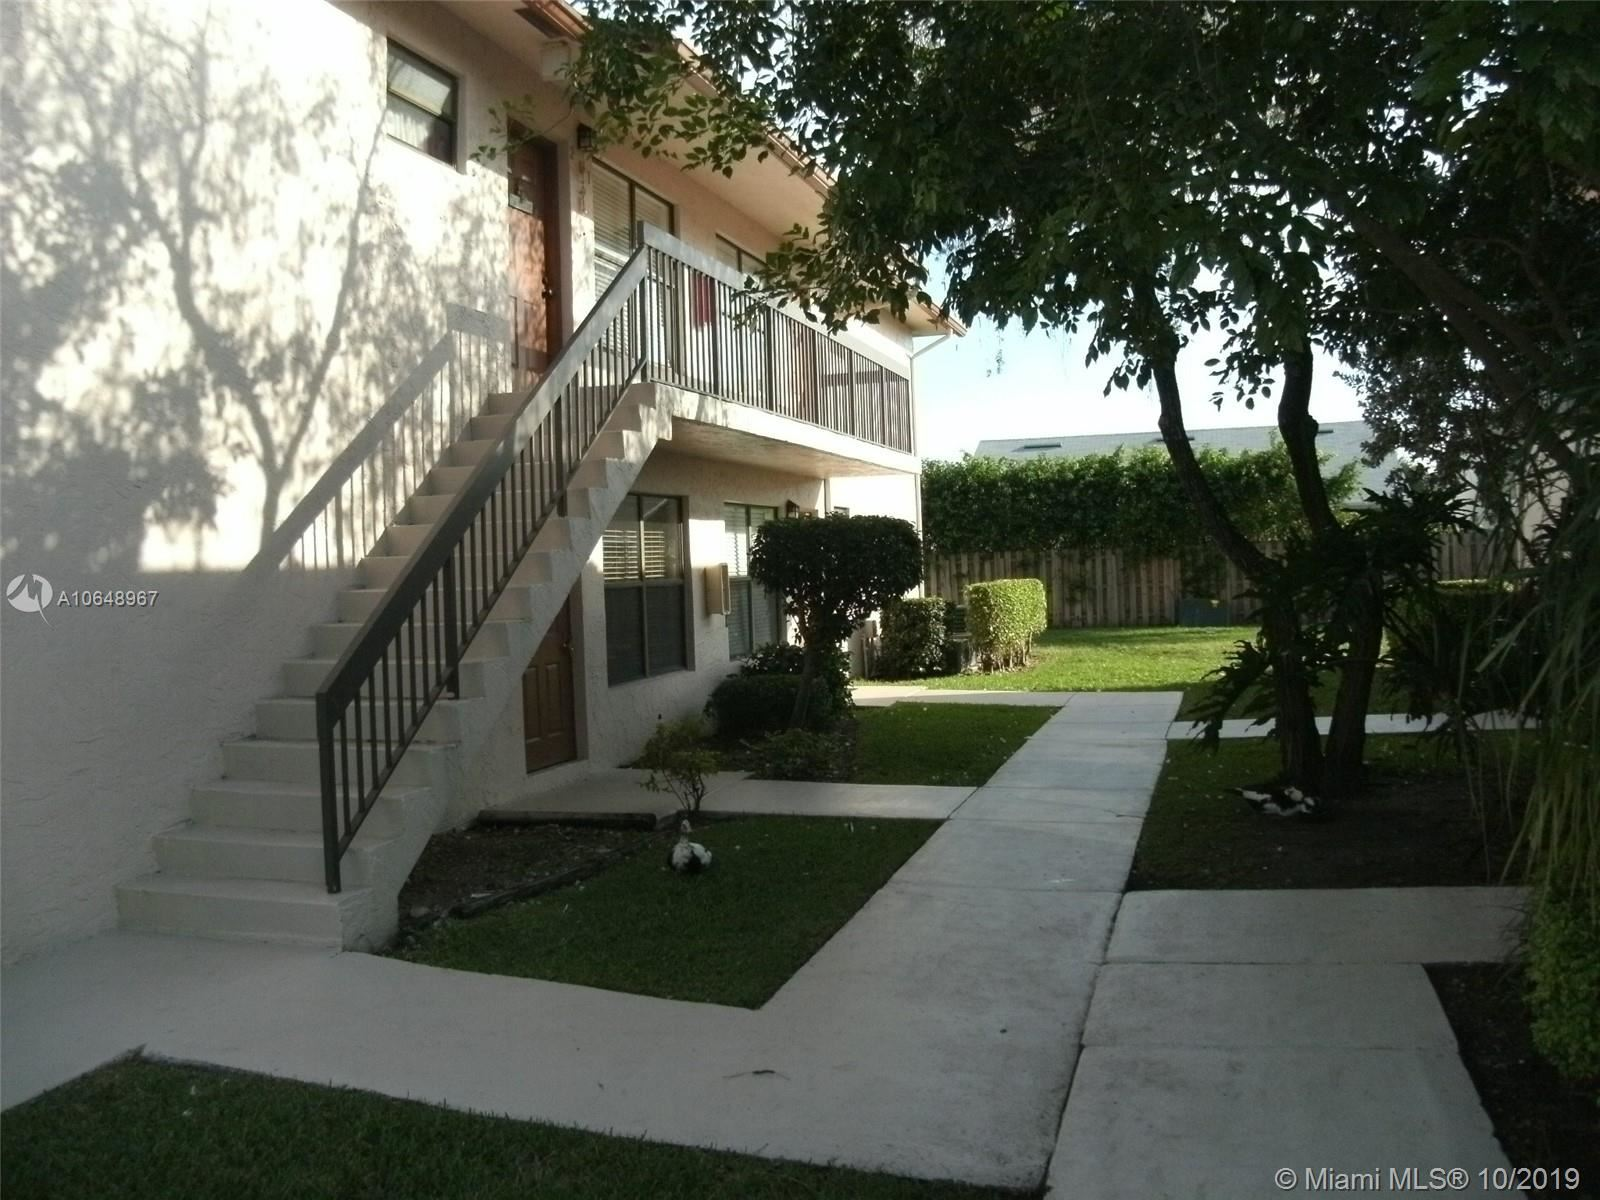 10055 Winding Lake Rd #101, Sunrise, FL 33351 - #: A10648967